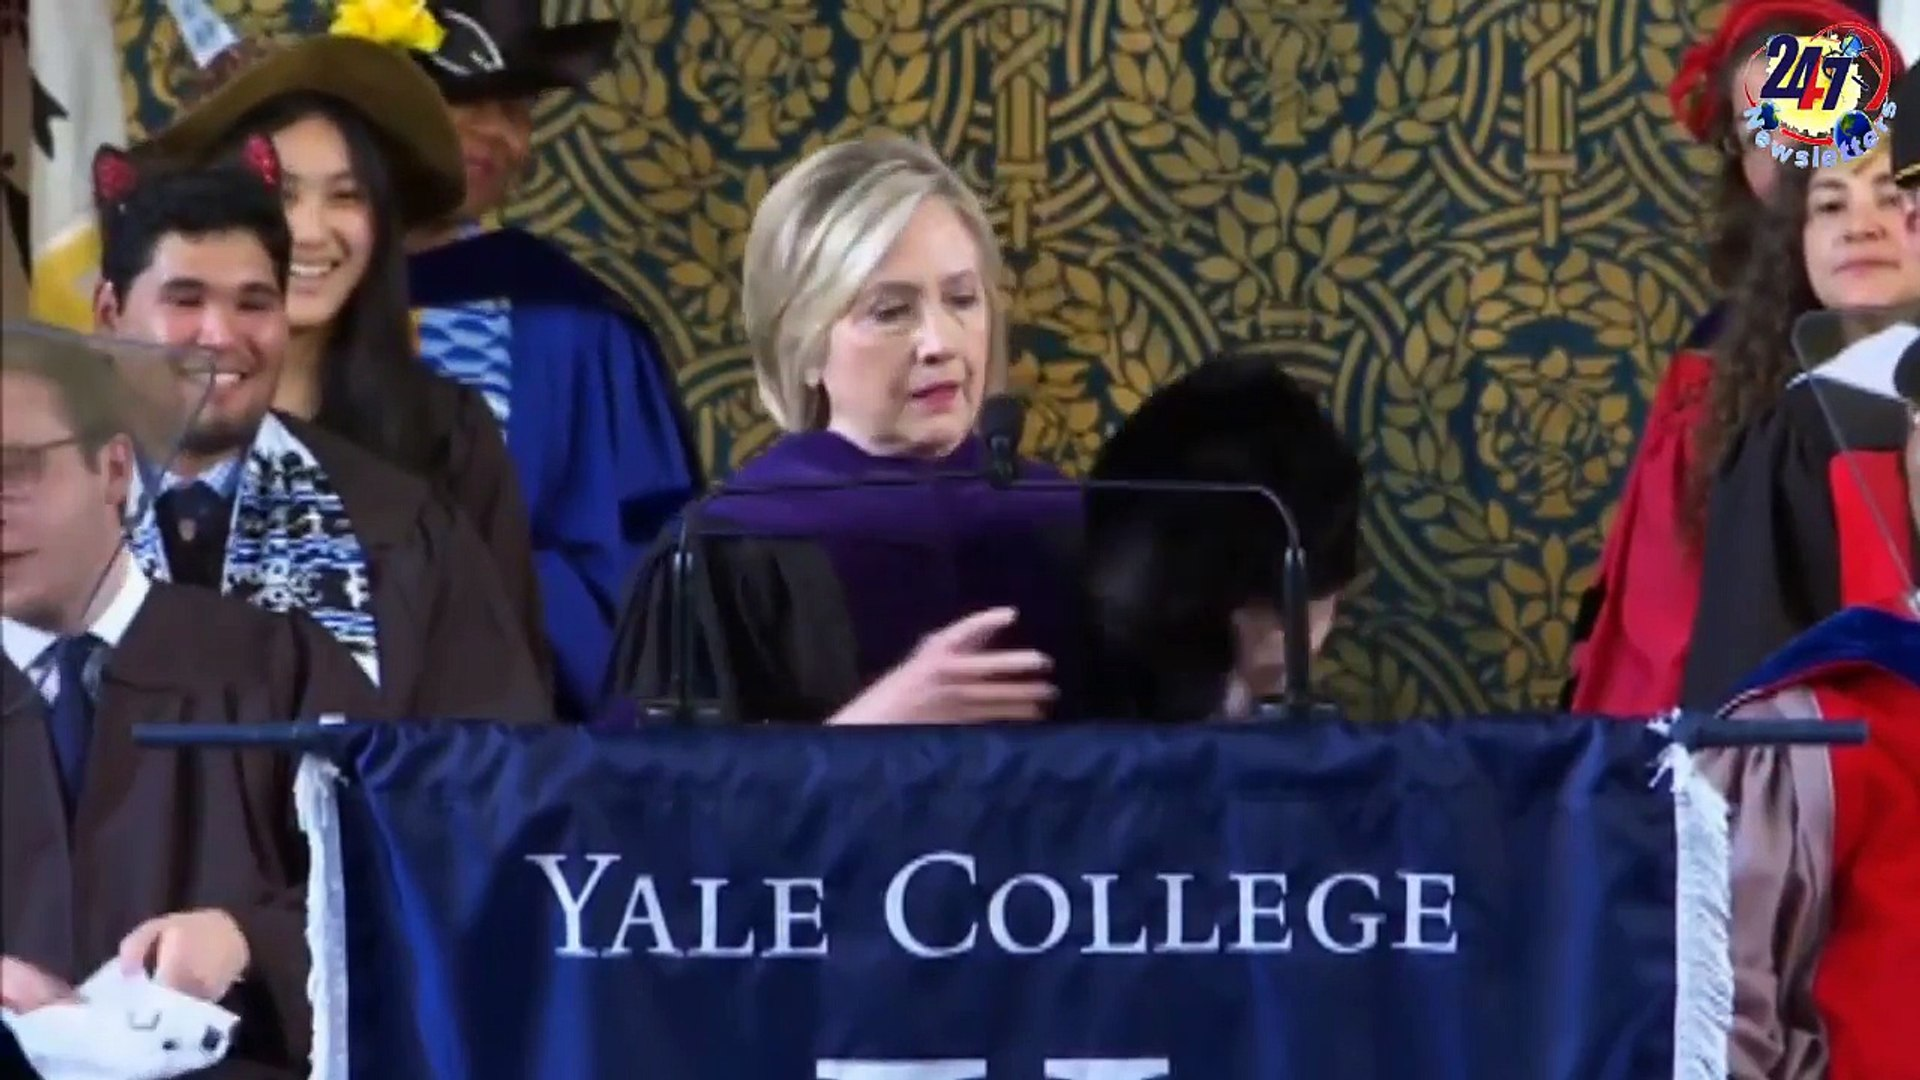 'No, I'm not over it' - Hillary Clinton jabs Trump, shows off Russian hat at Yale Cla